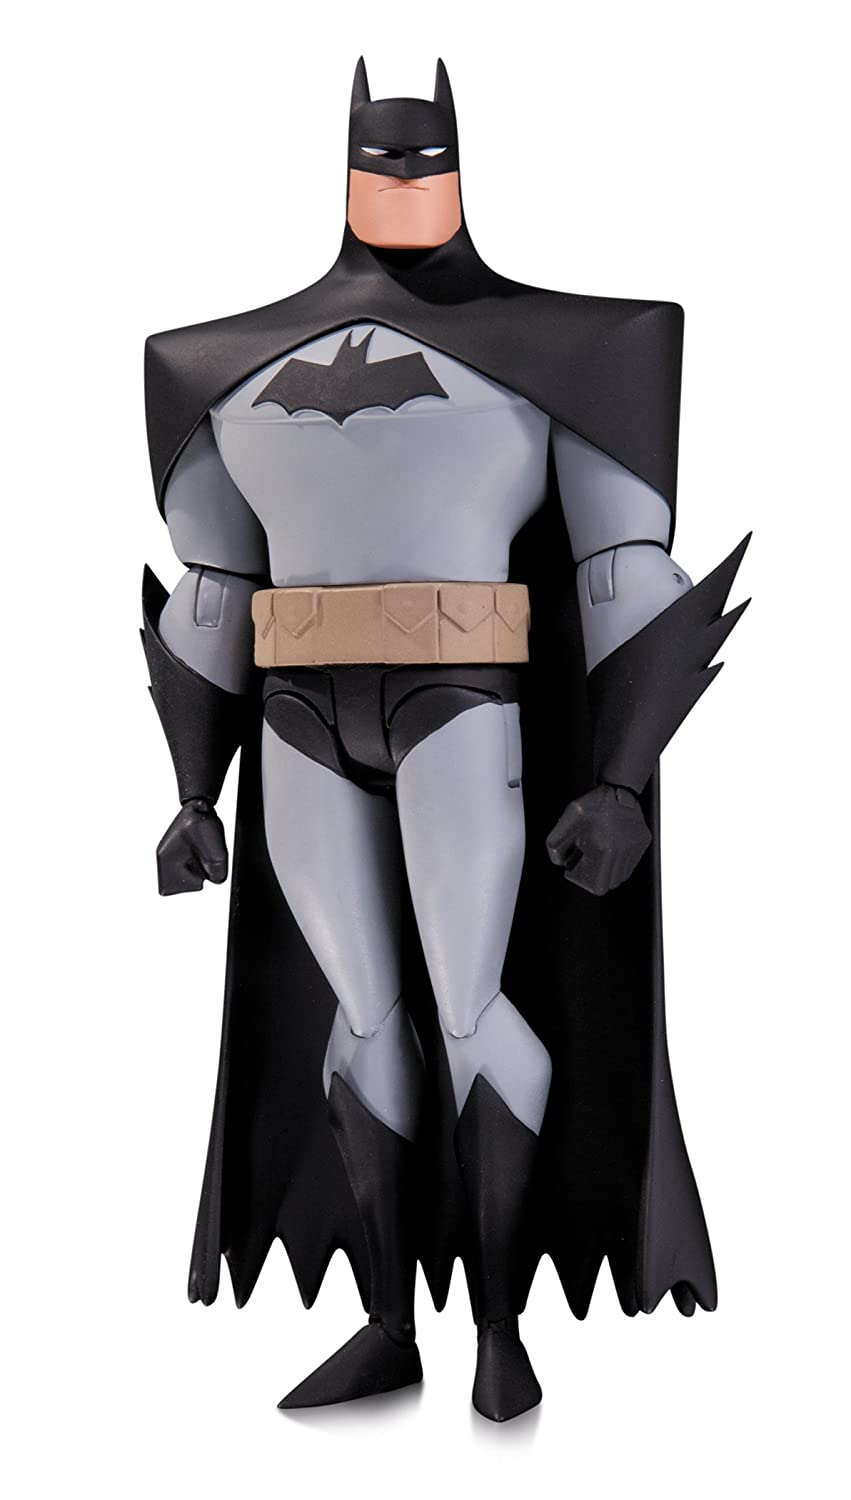 Warner Bros. DC Comics JUN140313 - The New Batman, figura de acción (JUN140313) - Figura Batman 16 cm